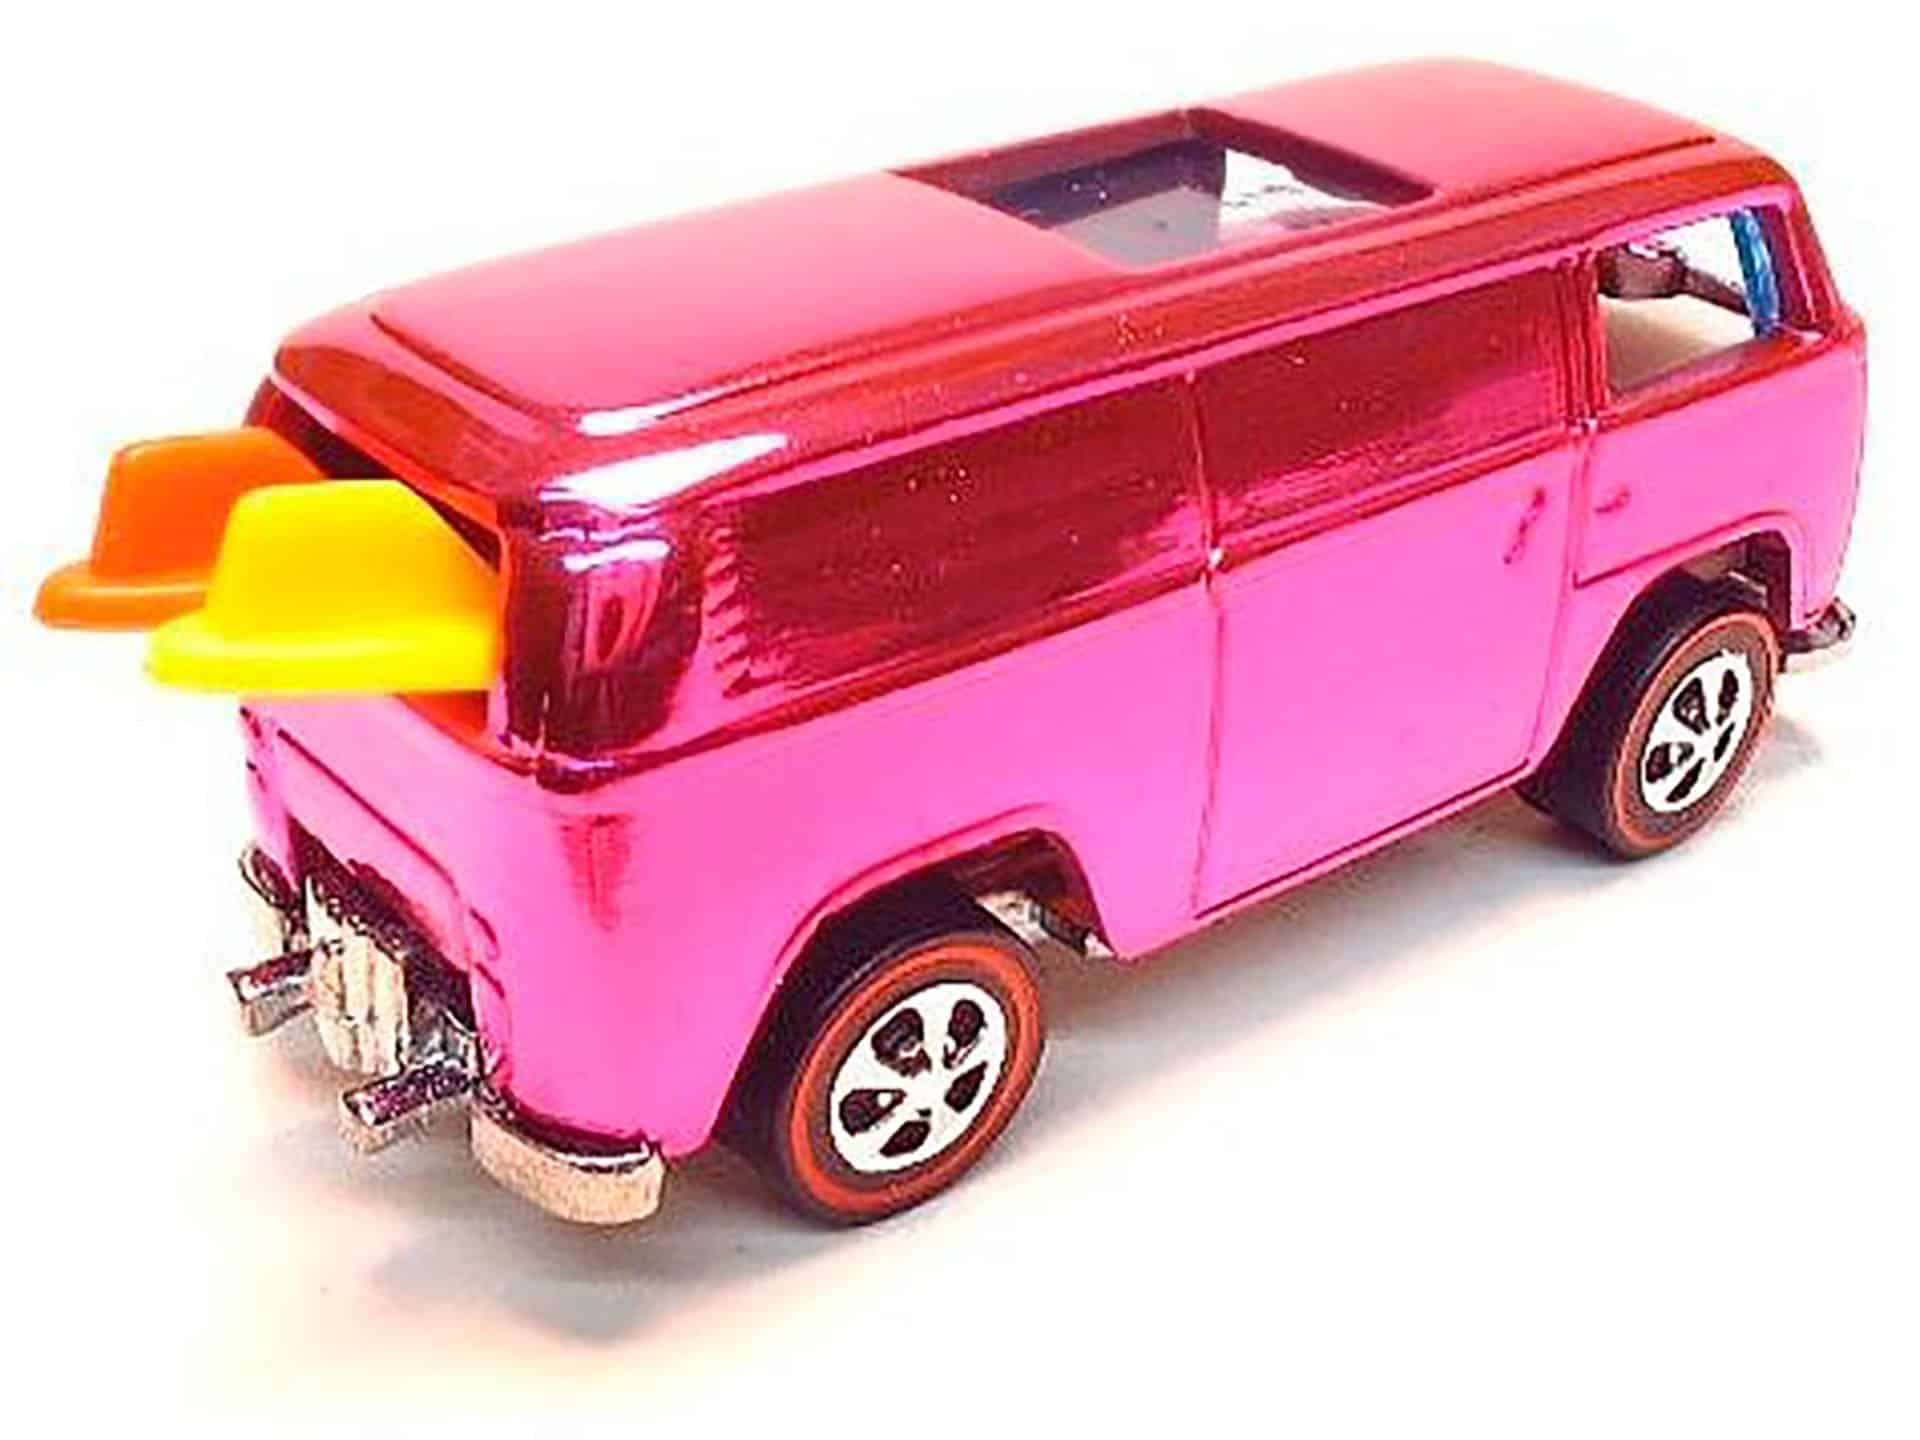 Most Expensive Hot Wheels - 1969 Pink VW Beach Bomb